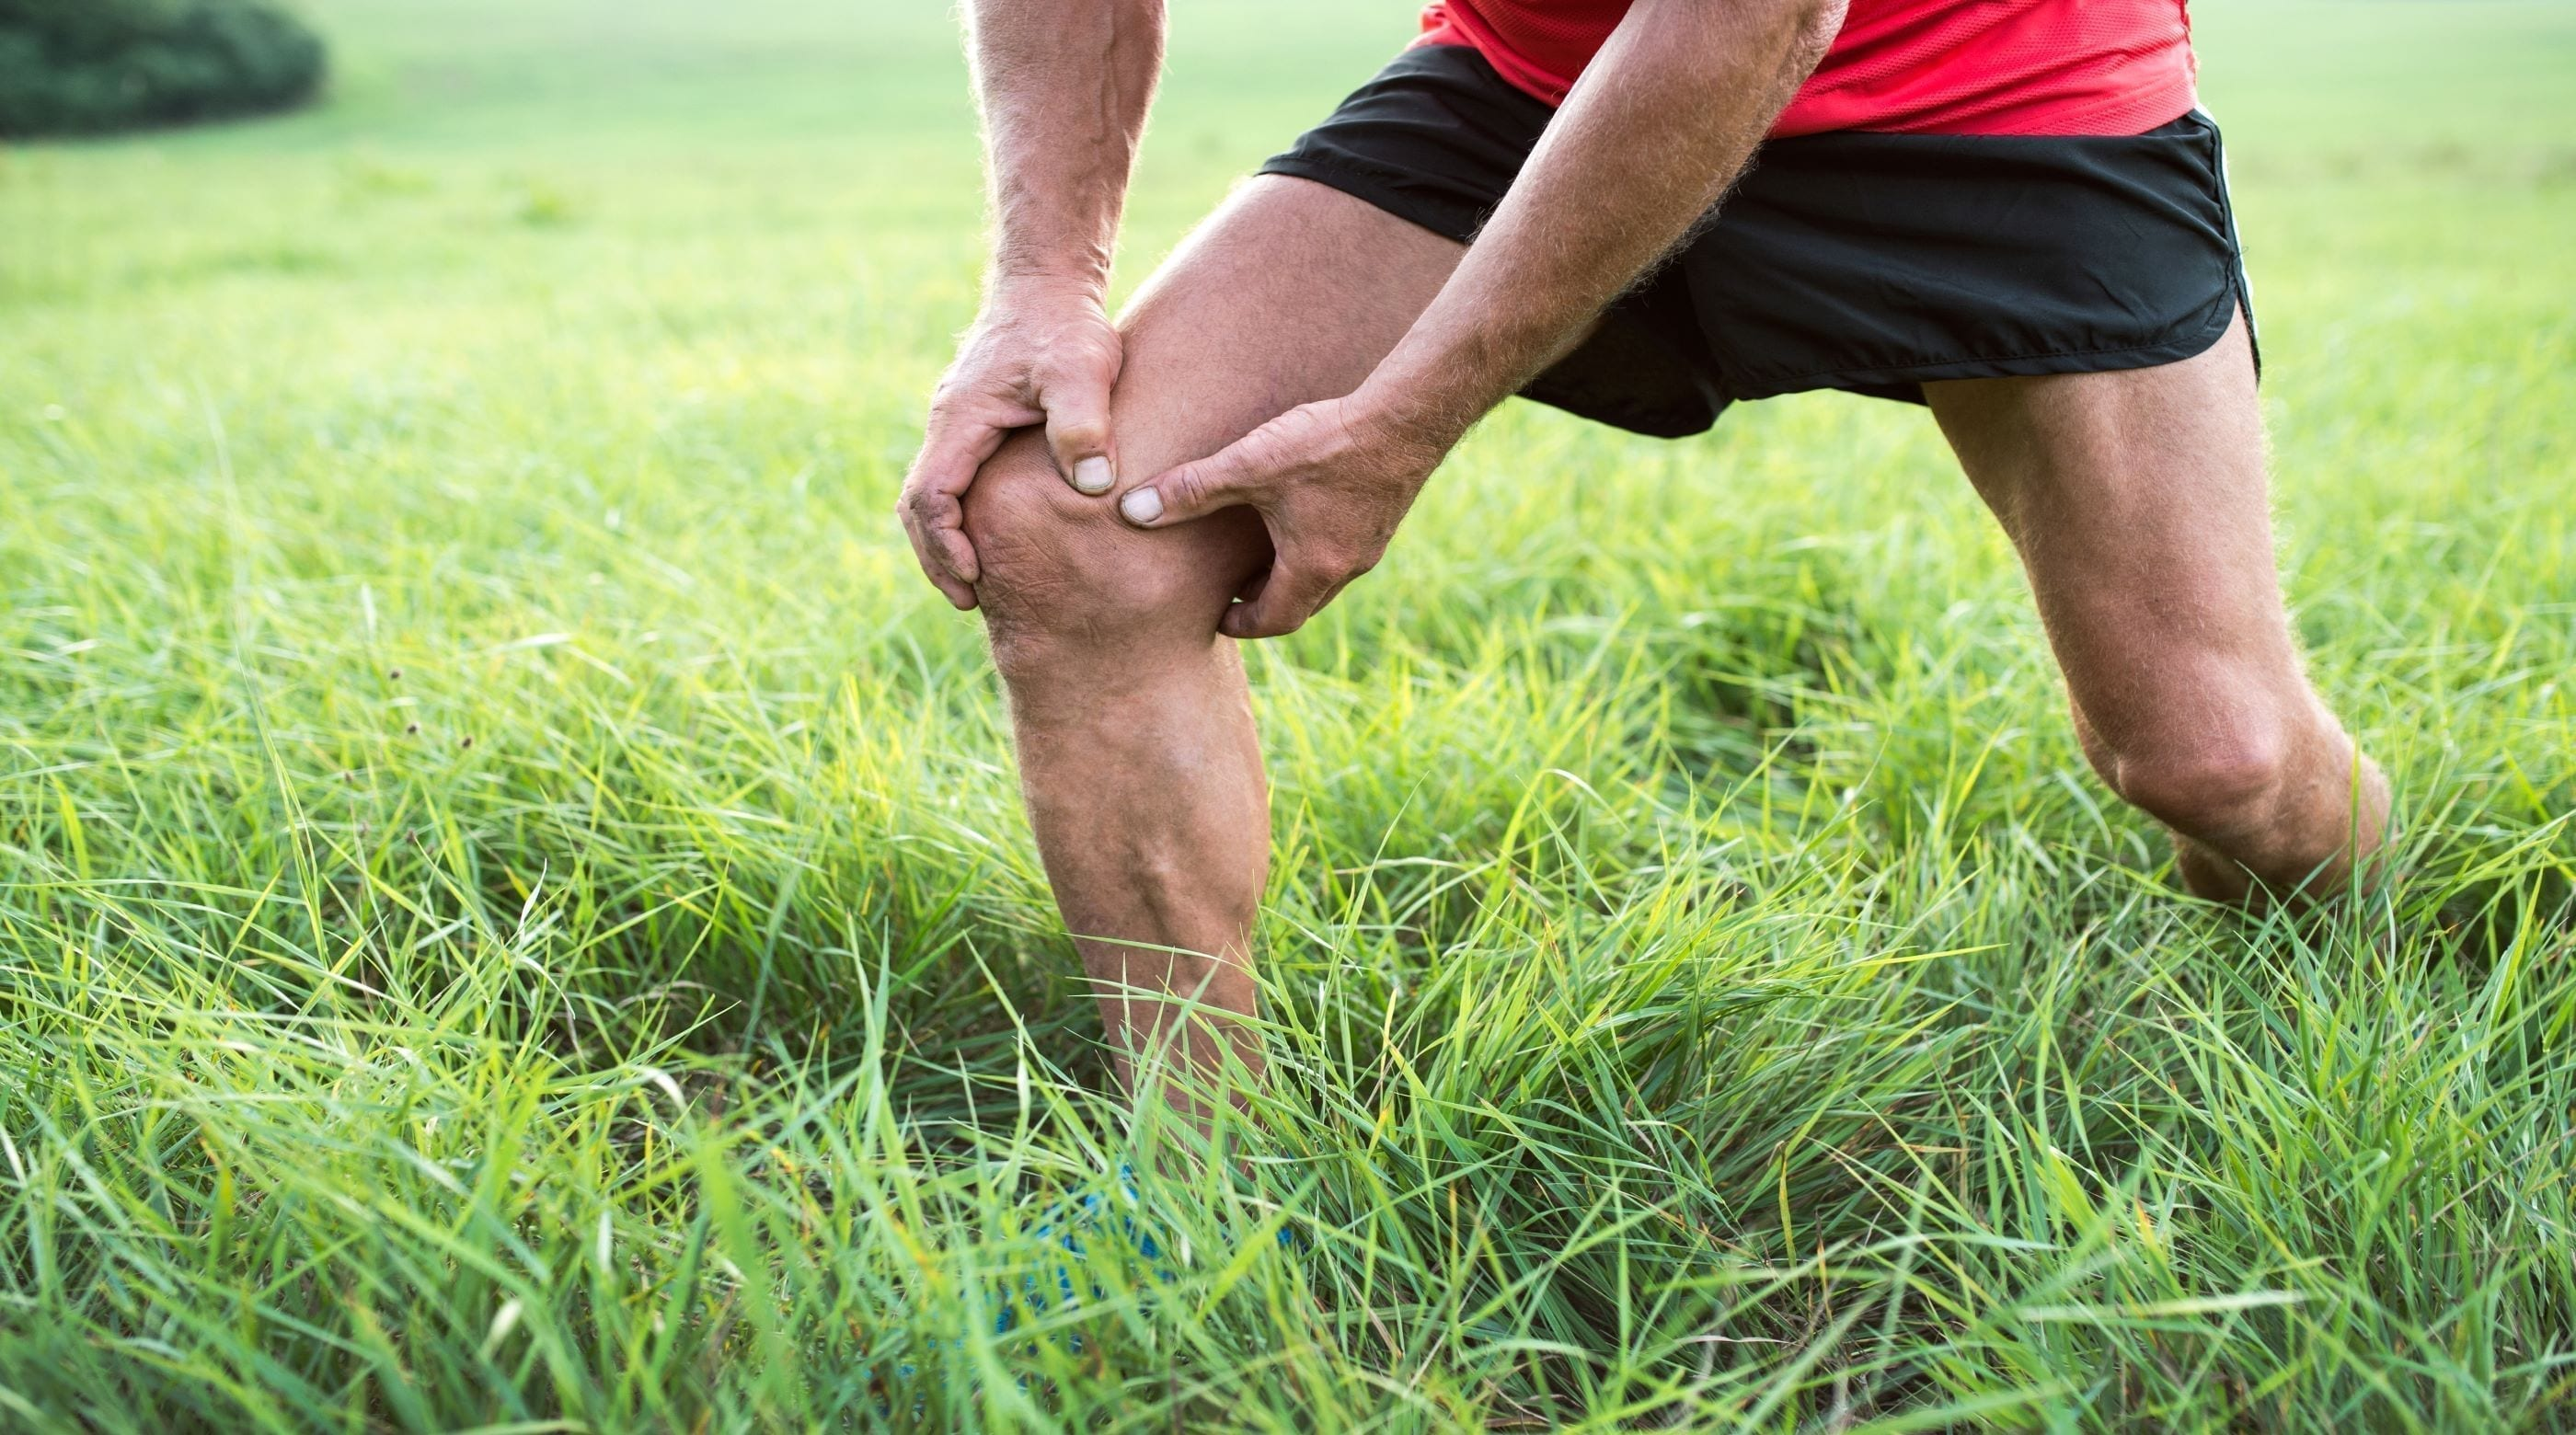 Treating Motor Control Deficits in the ACL Population